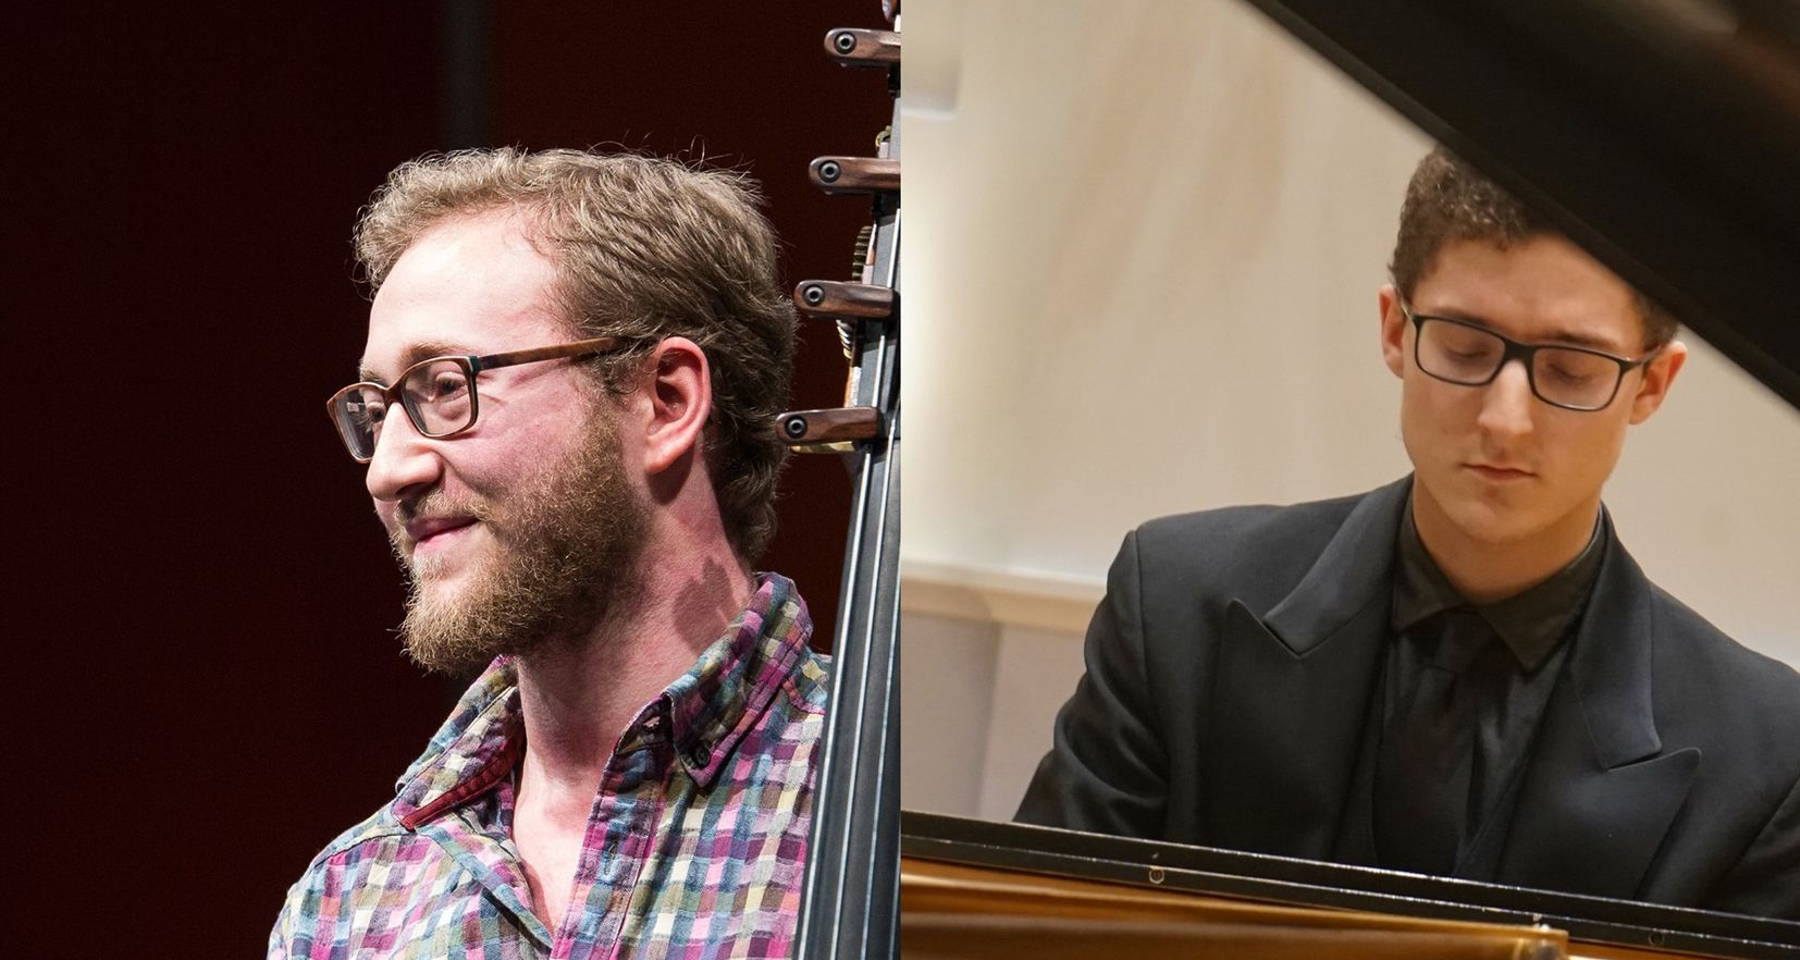 Sam on bass and Ryan on piano with music by Coleridge-Taylor, William Grant Still, H. Leslie Adams, and more.